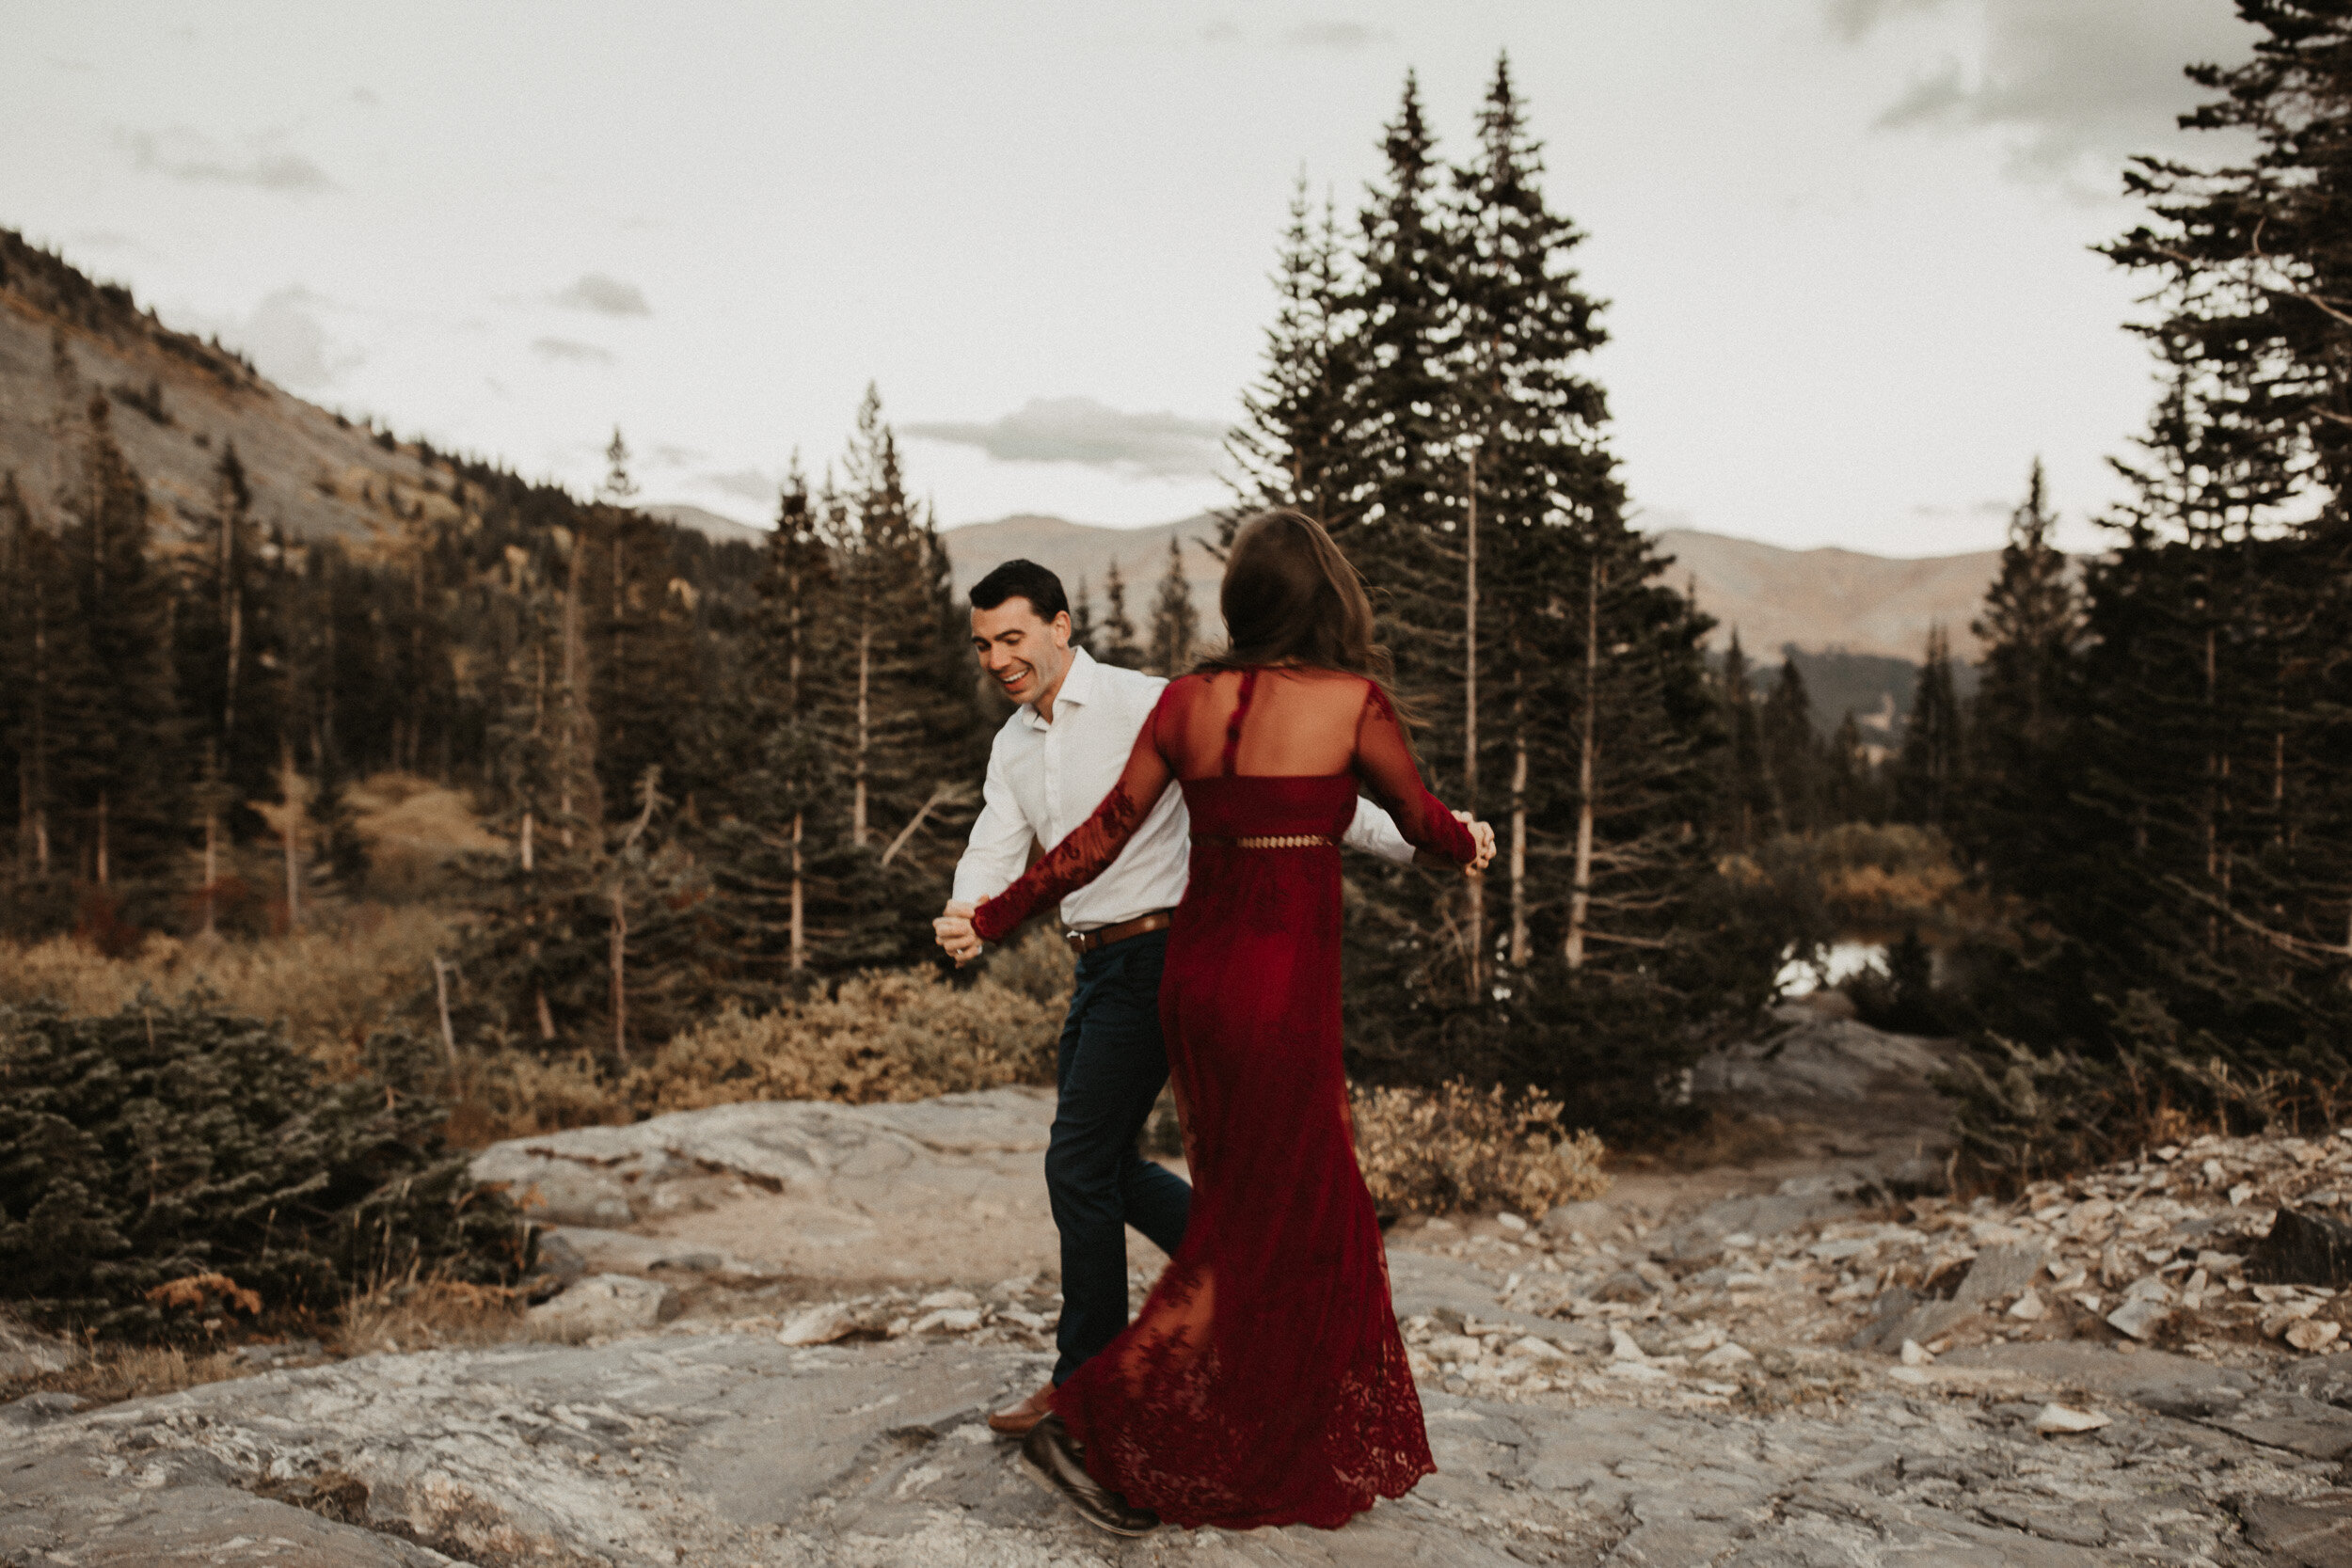 Claire_&_Matthew_Engagment_Breckenridge_Colorado_Fall_0629.jpg